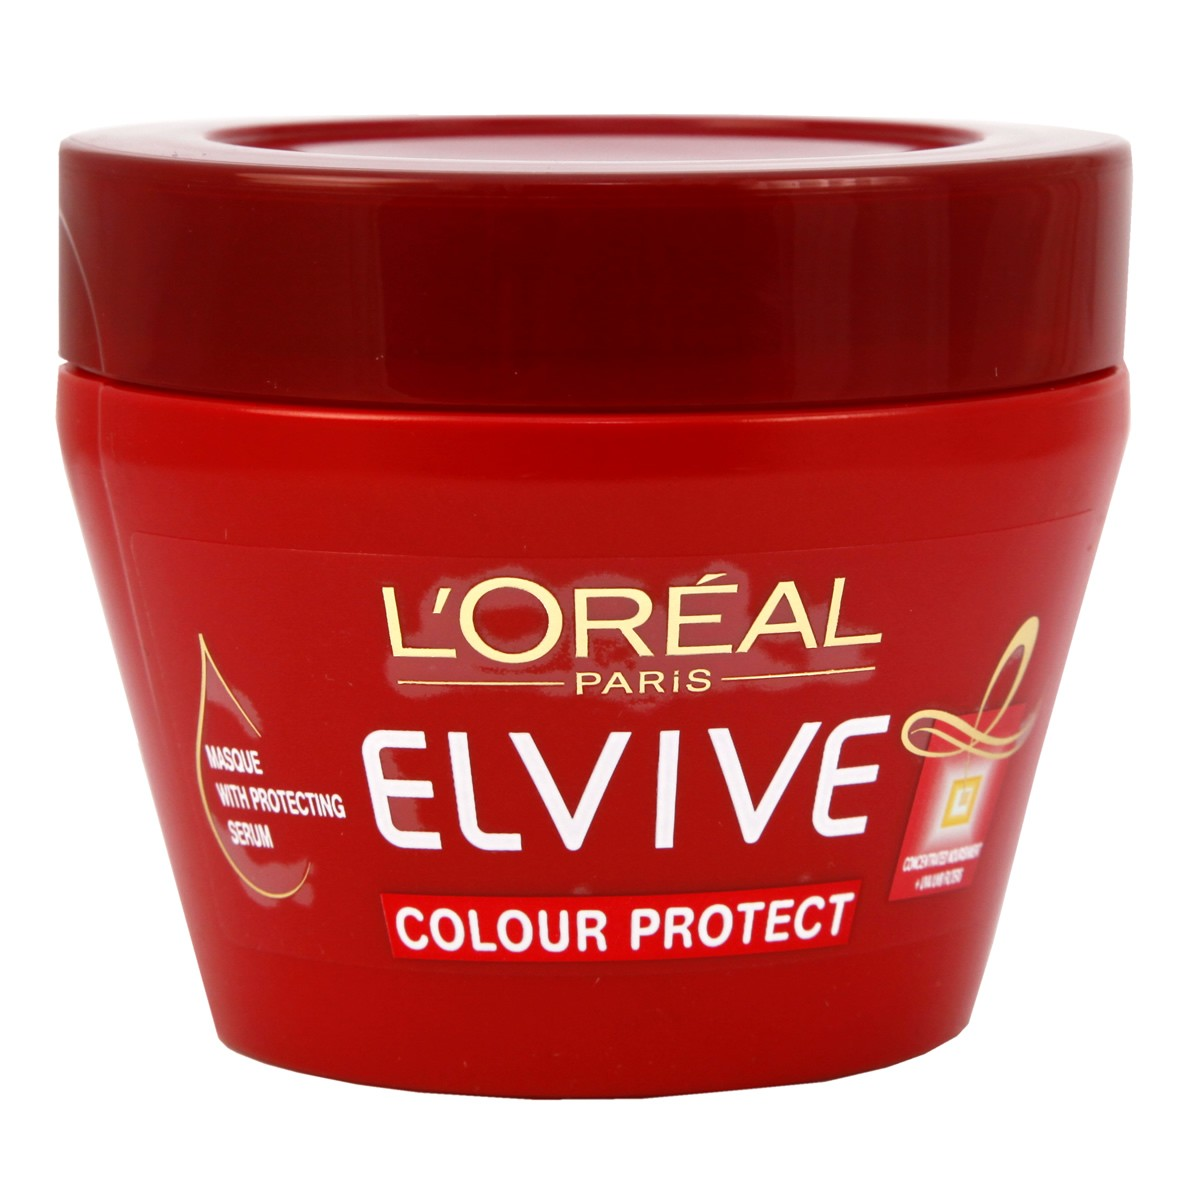 L'Oreal Paris Elvive Colour Protect Protecting Masque